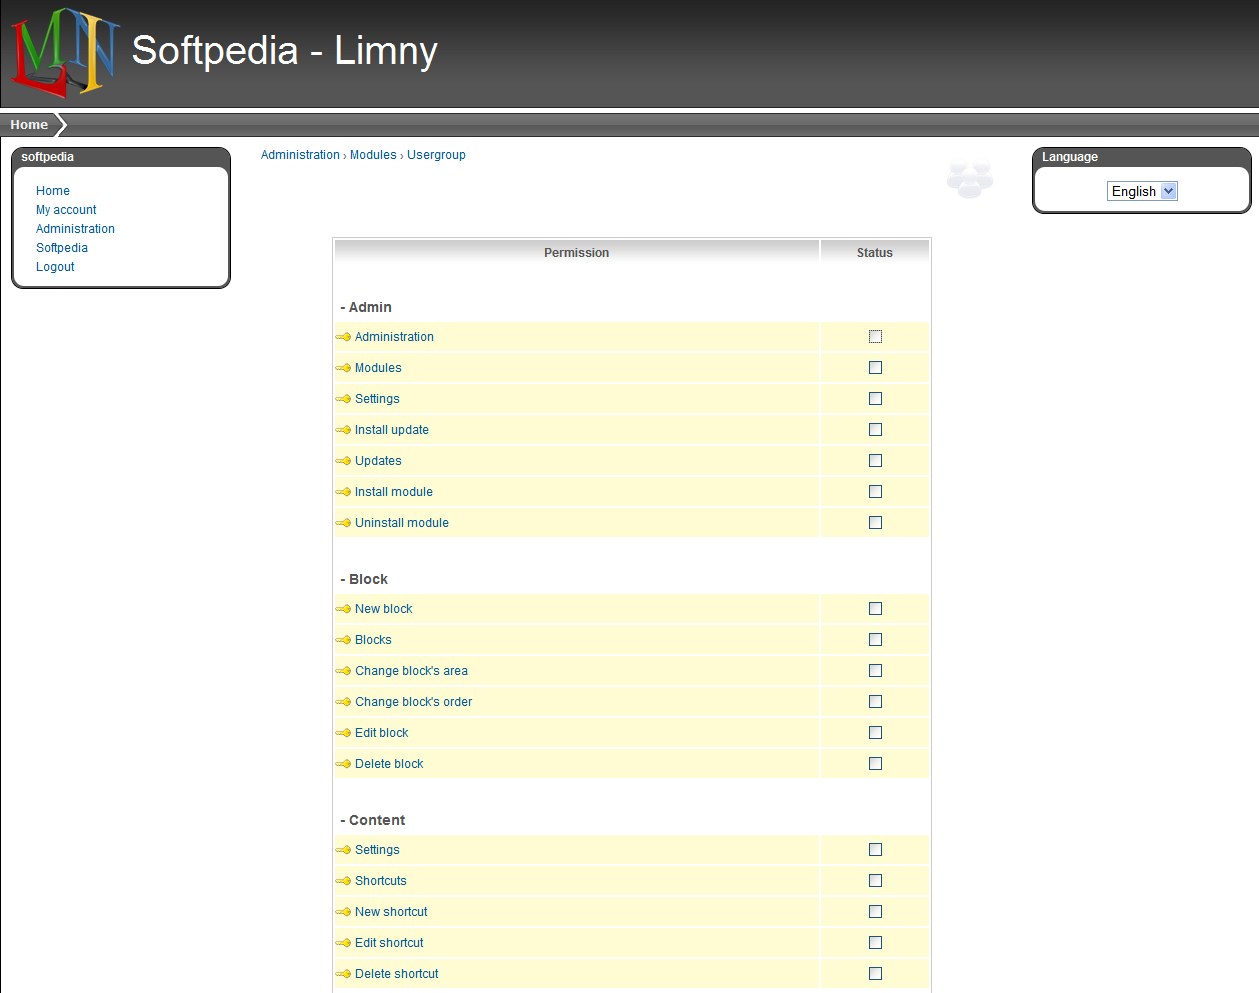 Limny - Managing group permissions